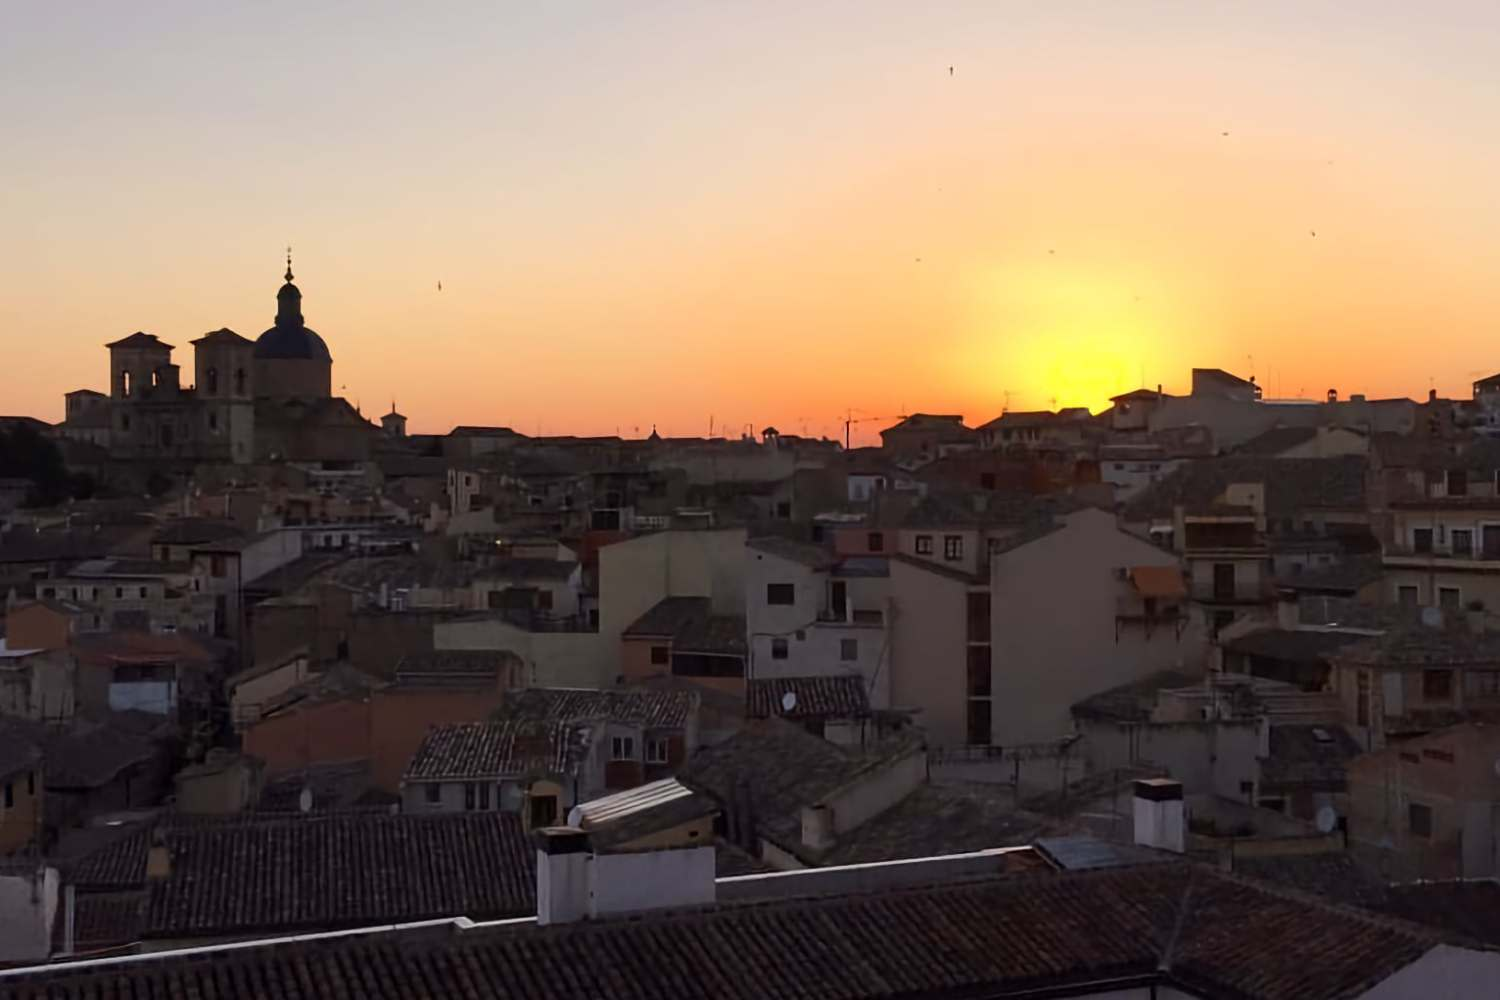 Sunset over Toledo - a UNESCO World Heritage Site